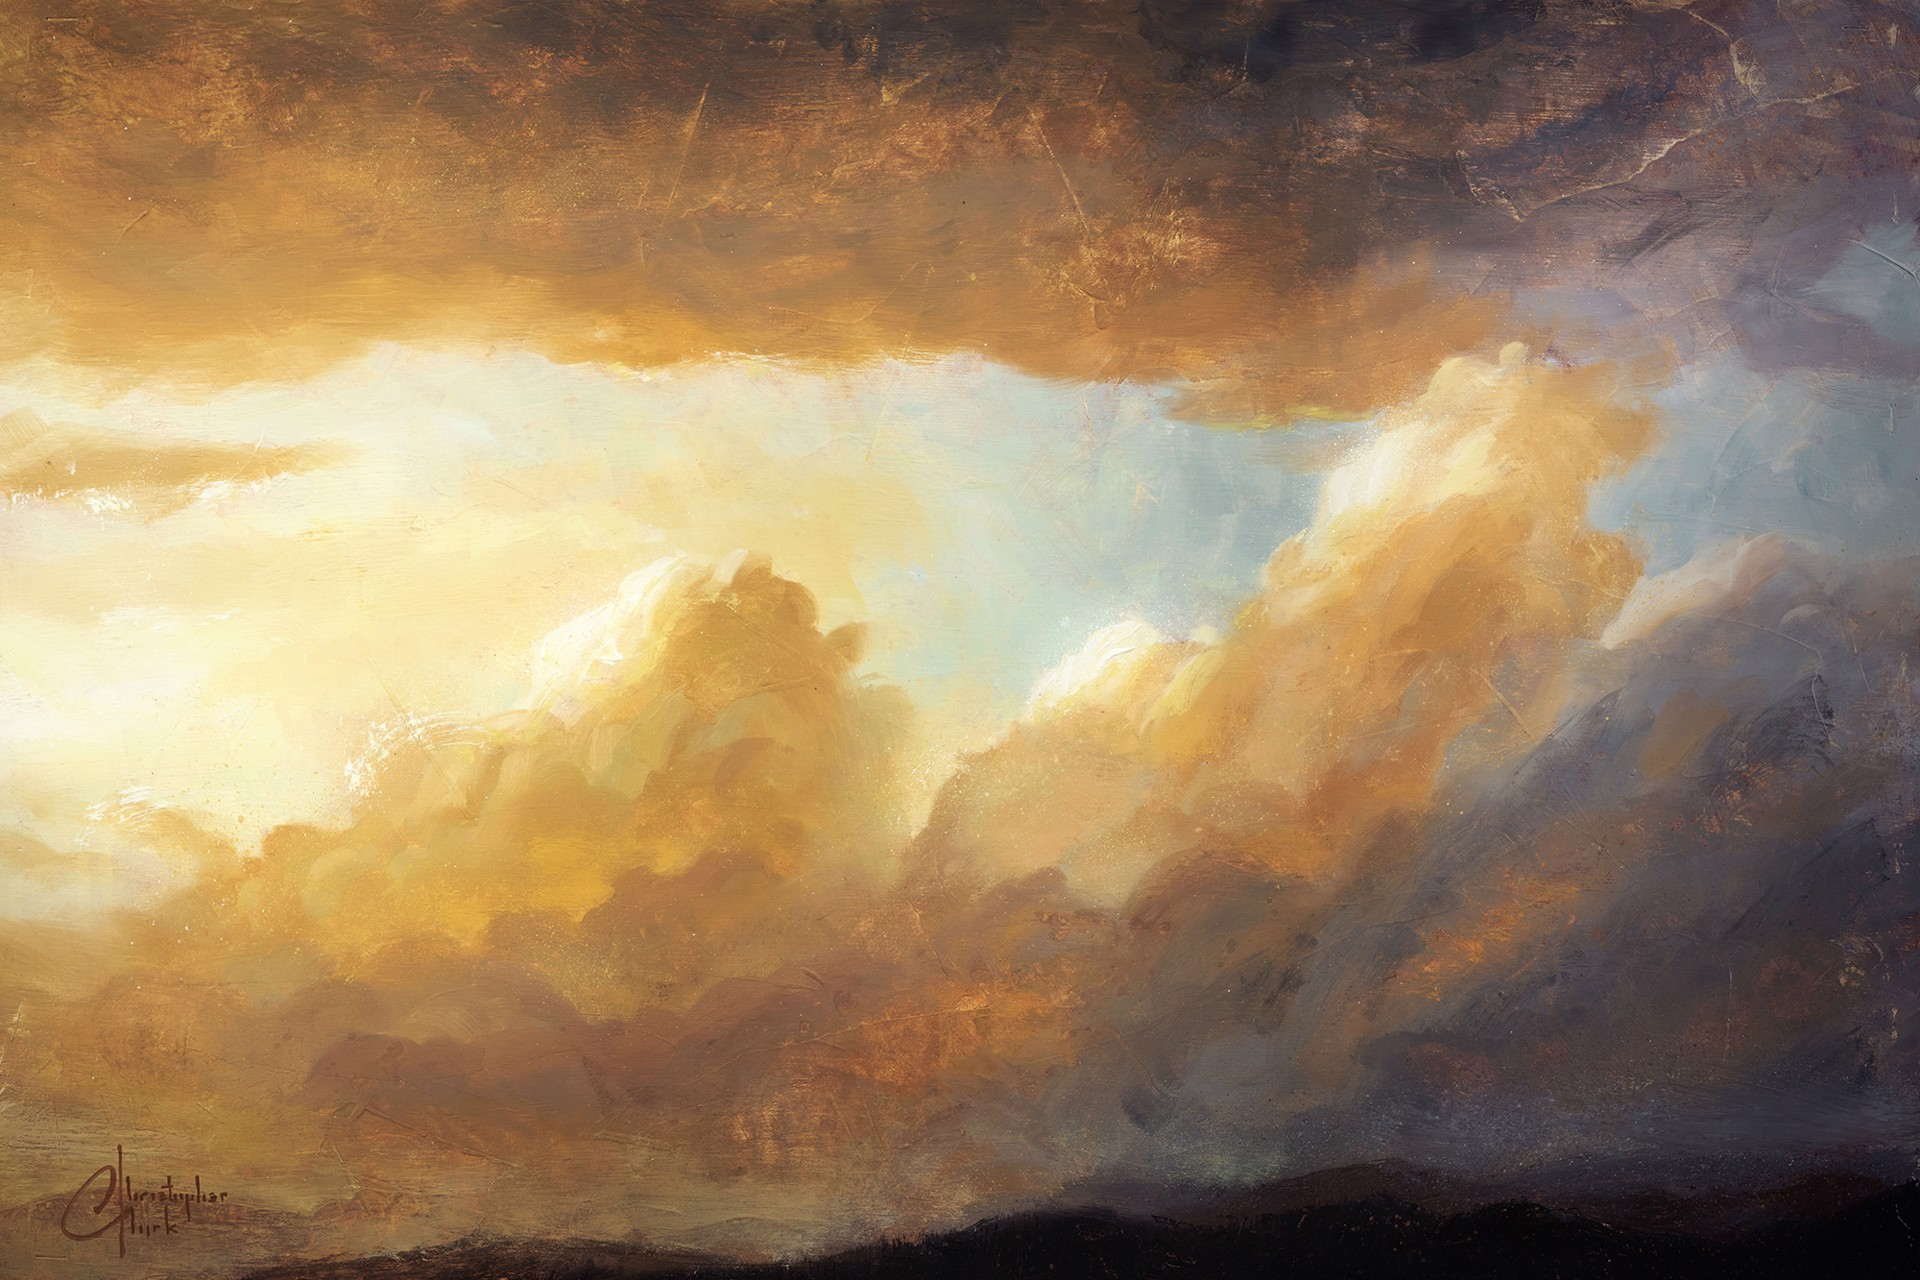 Cloudscape I by Christopher Clark